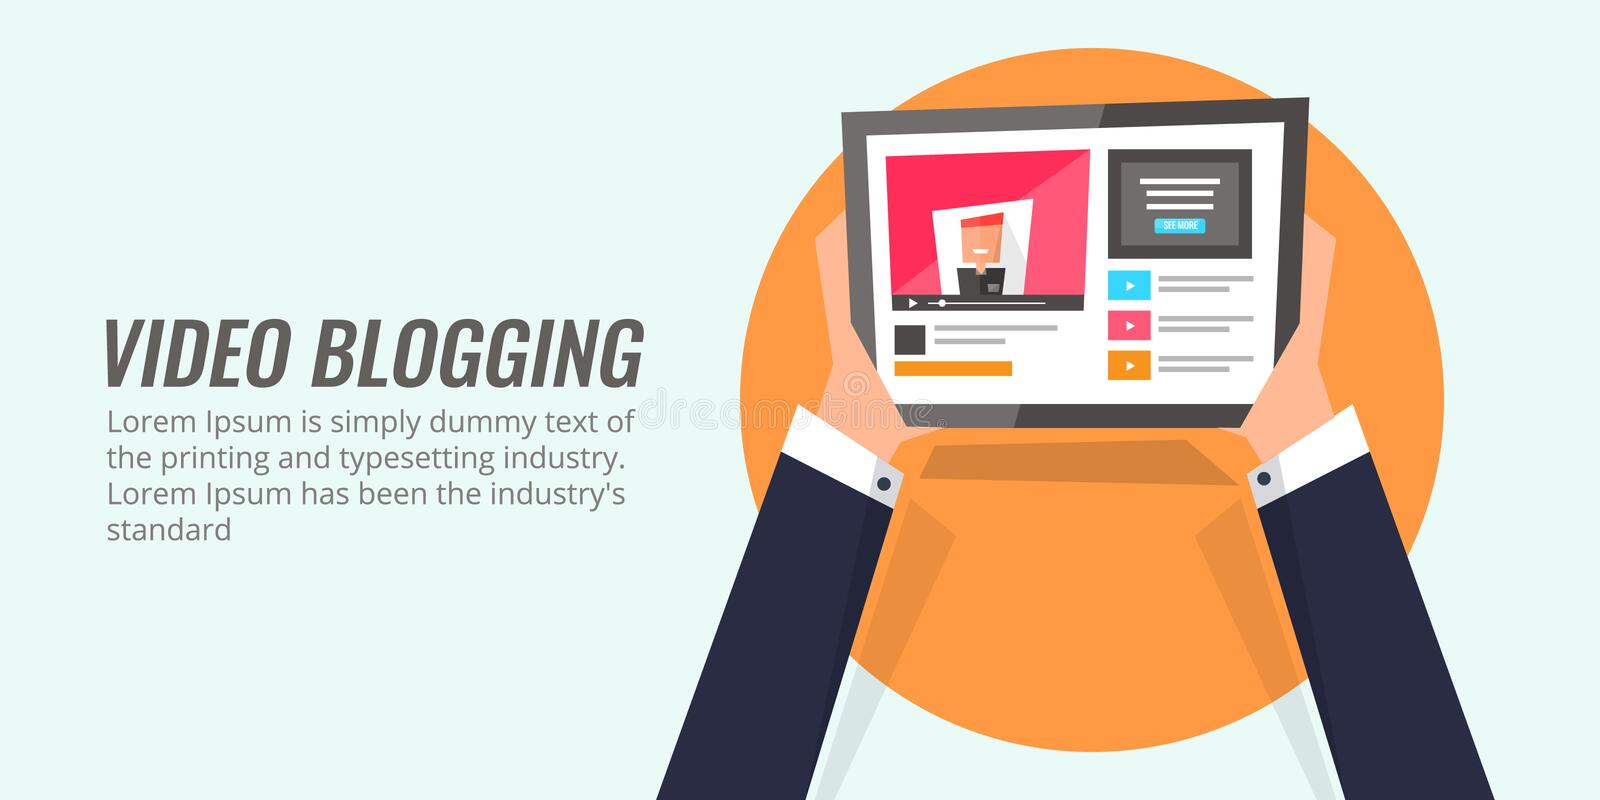 Business man watching a video on a tablet device. Video blogging - vlogging concept of modern digital marketing. Video blogging - a modern digital content royalty free illustration